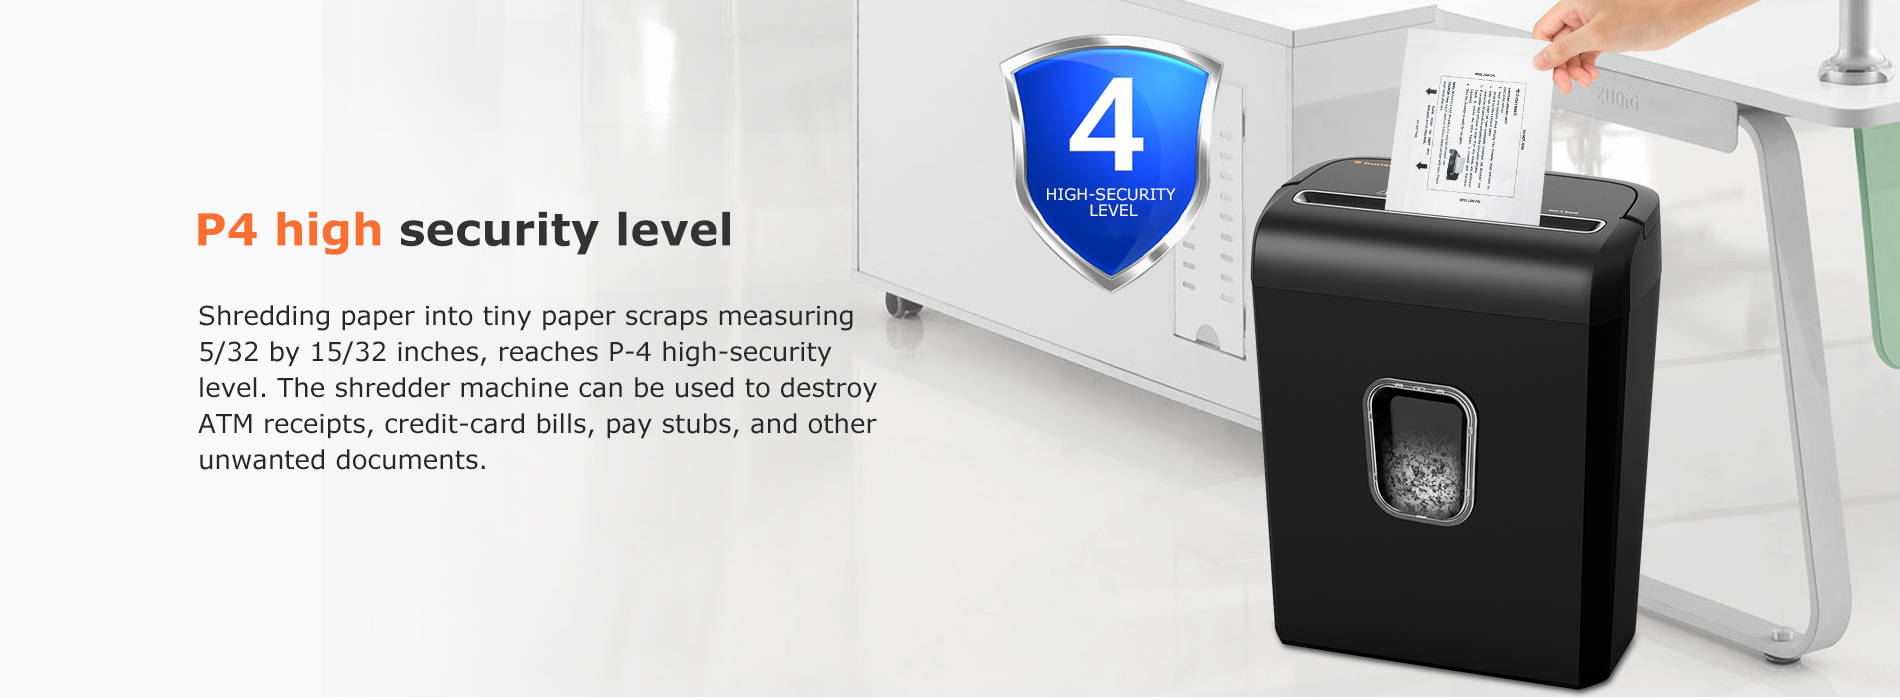 P4 high security level Shredding paper into tiny paper scraps measuring 5/32 by 15/32 inches, reaches P-4 high-security level. The shredder machine can be used to destroy ATM receipts, credit-card bills, pay stubs, and other unwanted documents.